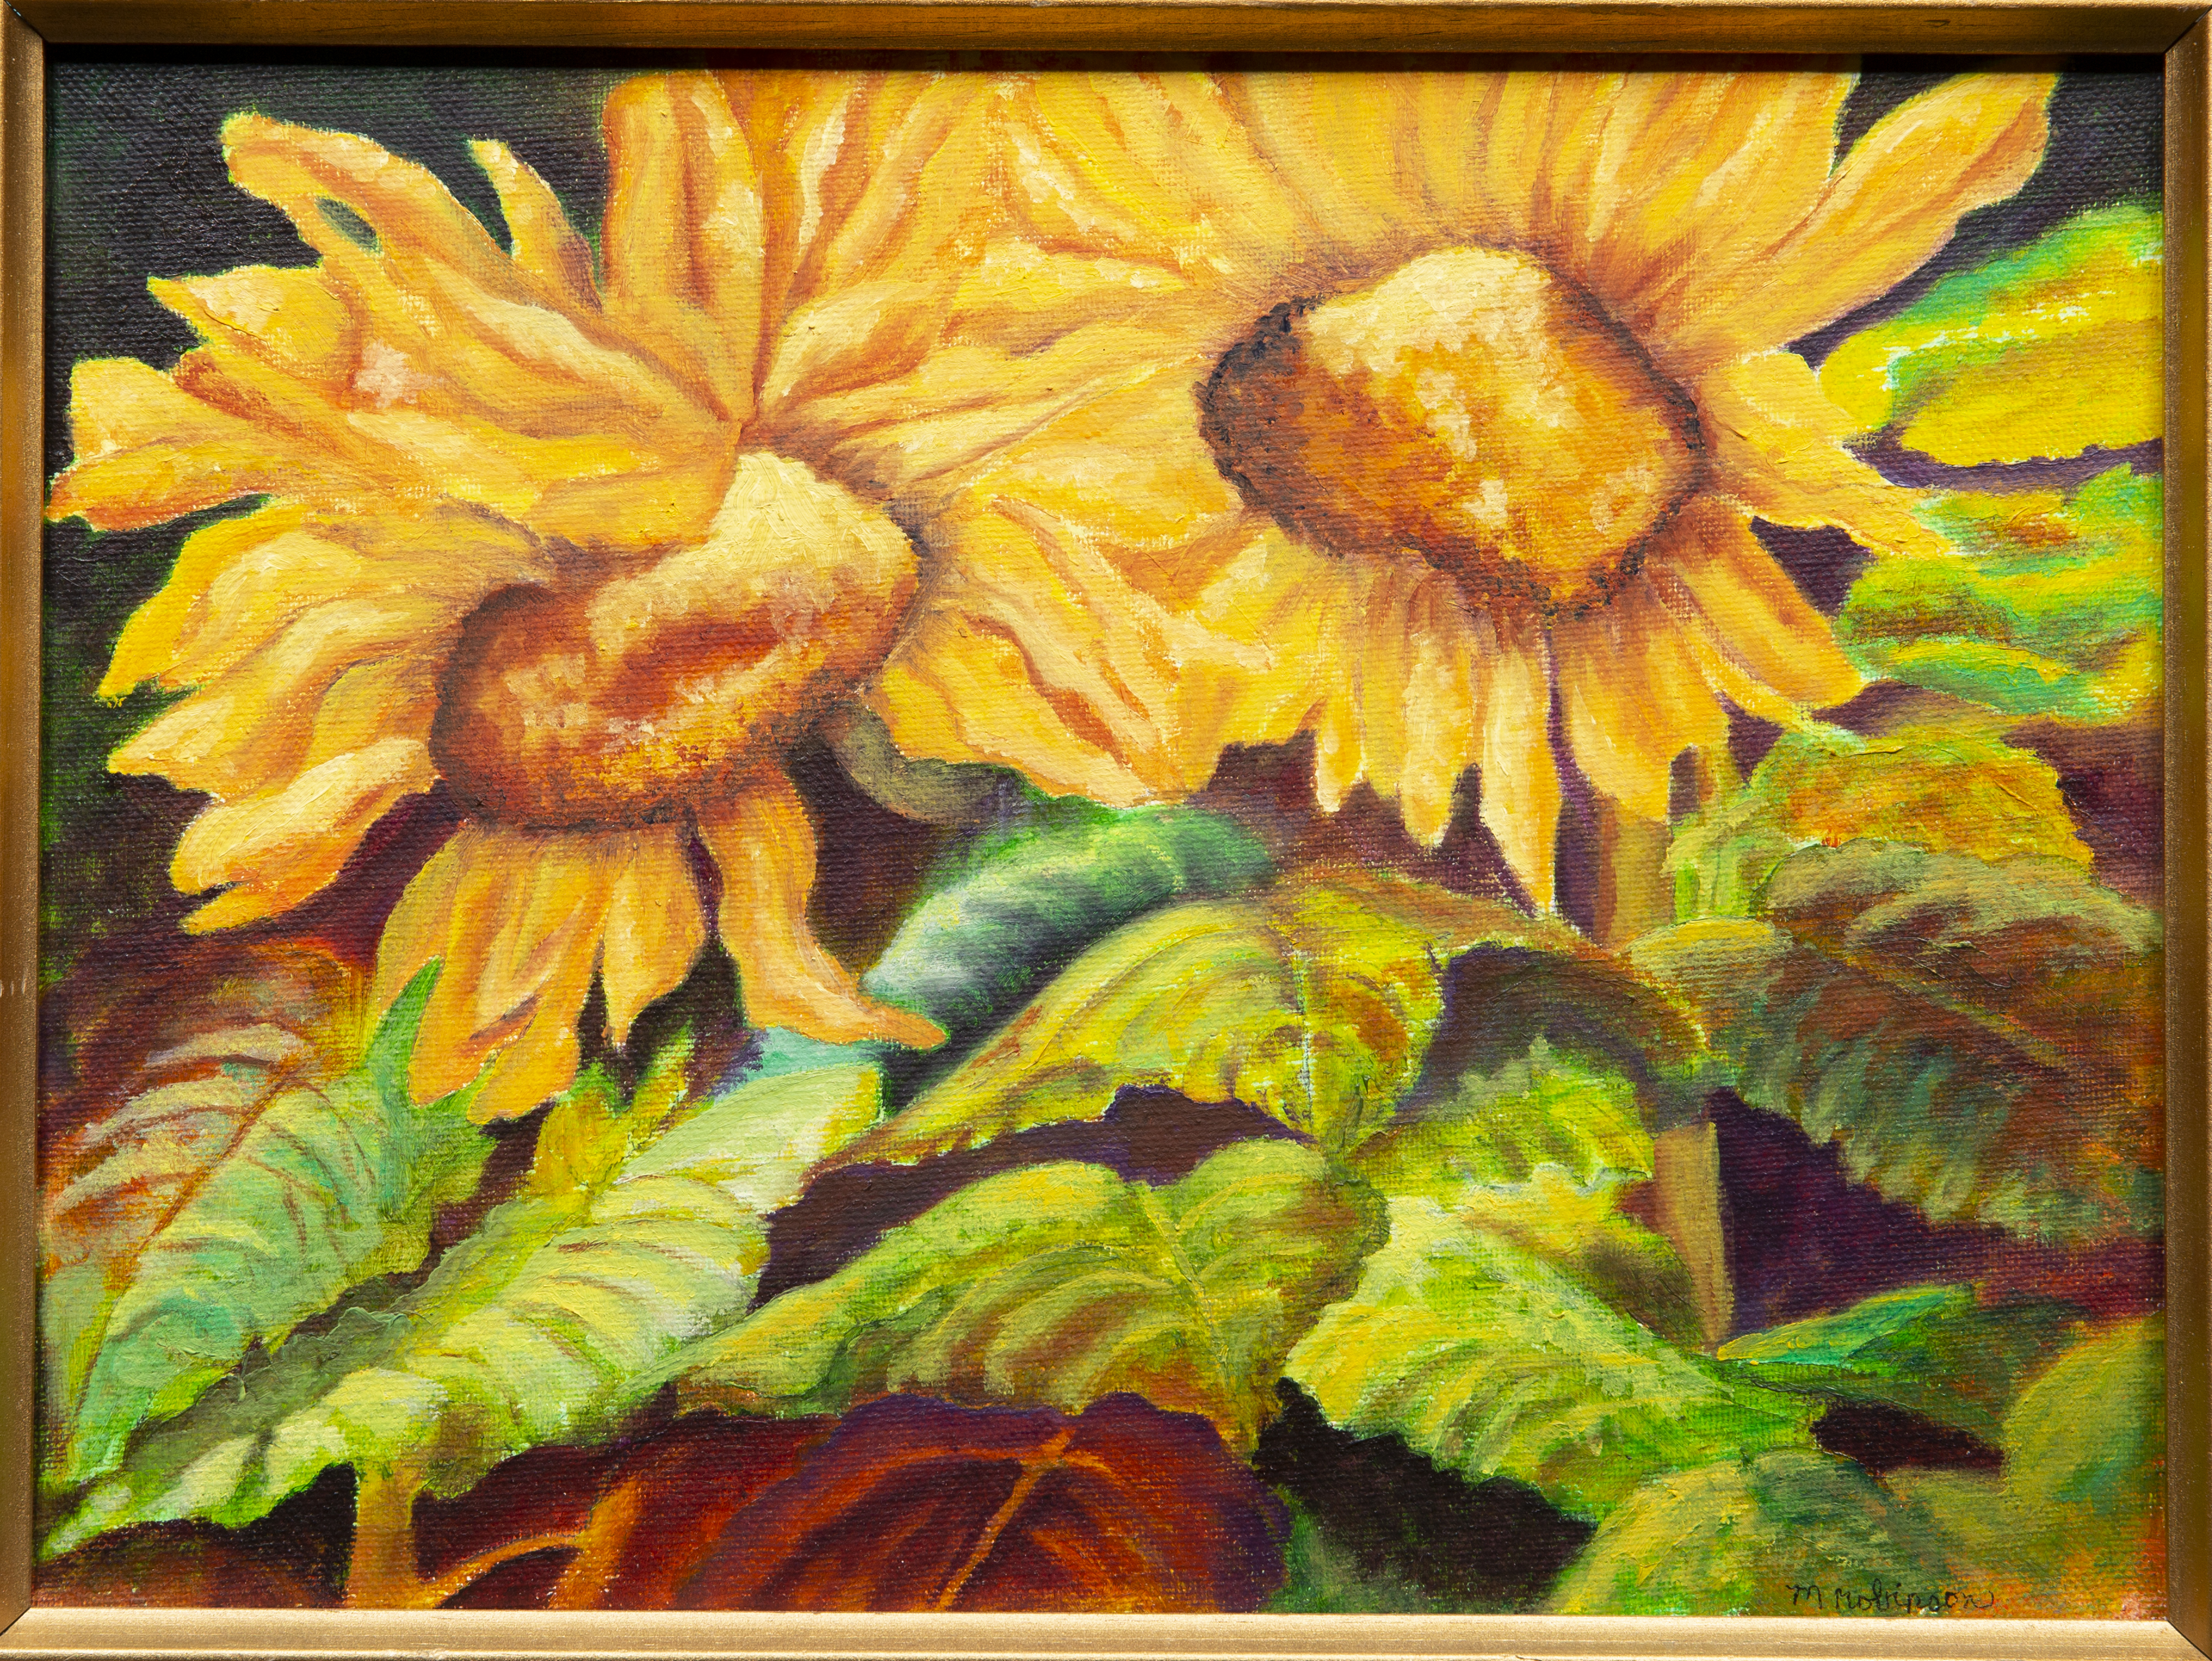 Painting - Two Sunflowers - painting of two vibrant yellow/orange sunflowers surrounded by a variety of green and brown foliage.